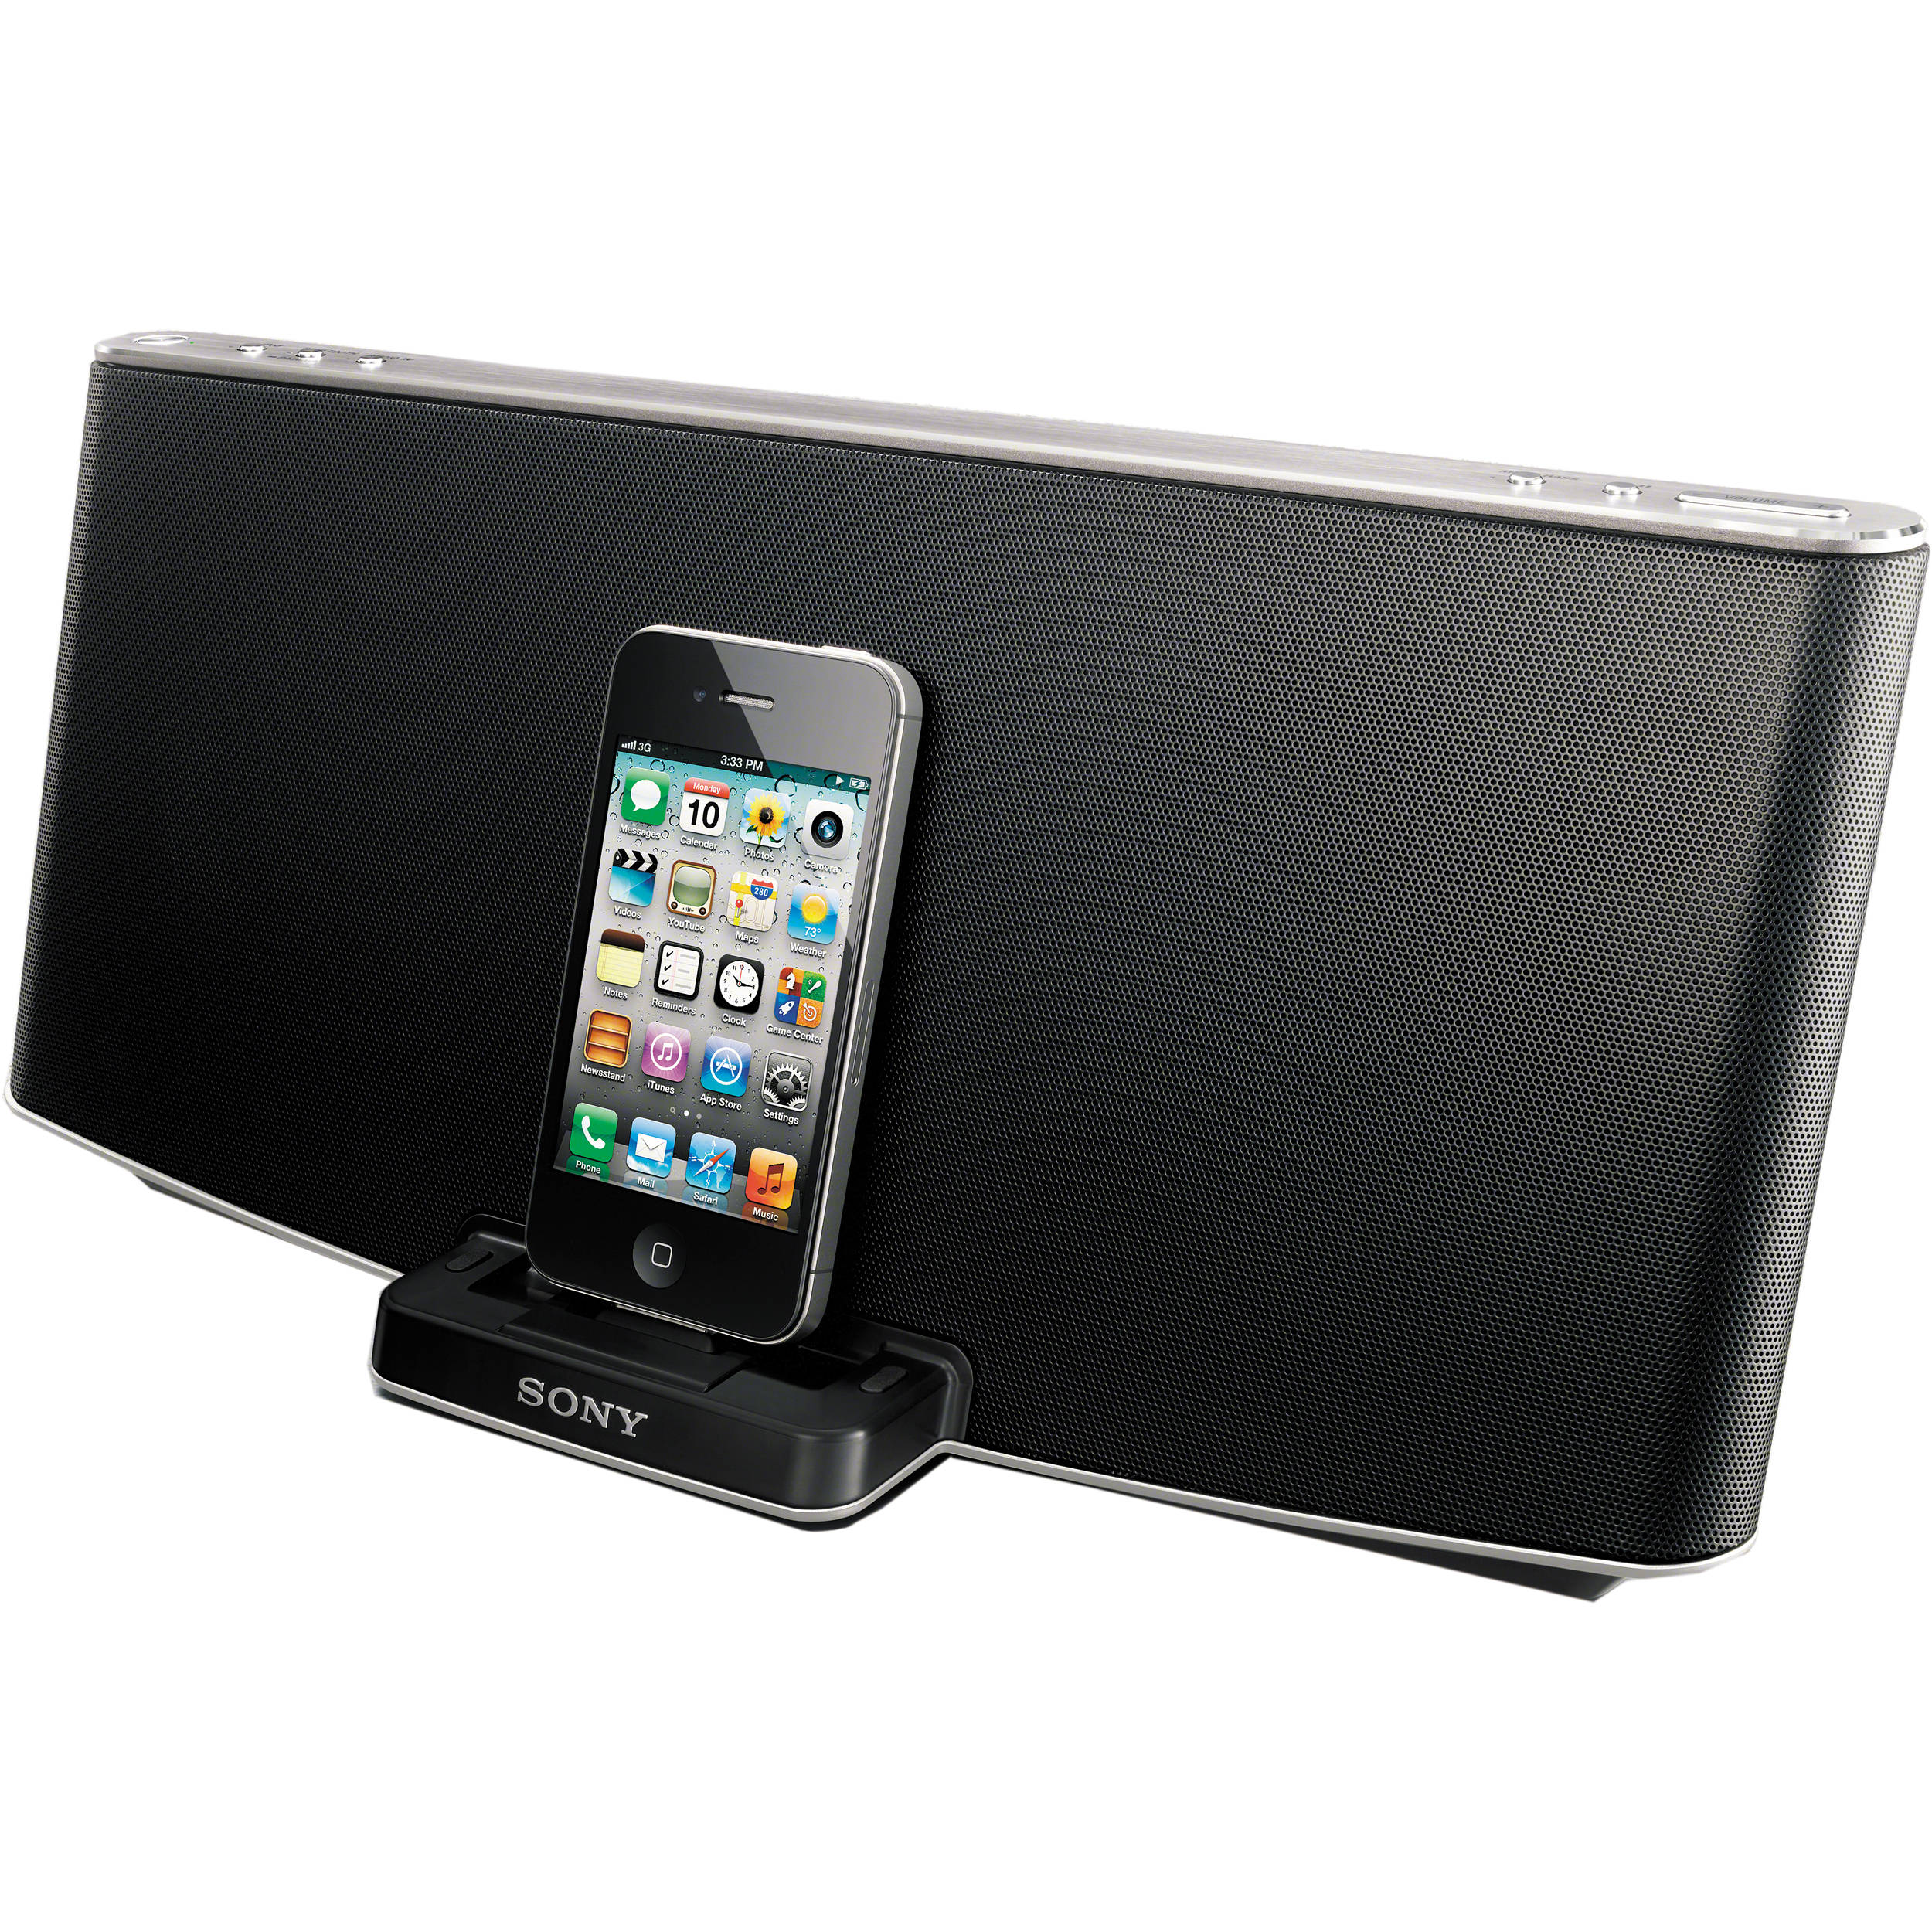 sony rdp x200ip speaker dock for ipod iphone rdpx200ip. Black Bedroom Furniture Sets. Home Design Ideas